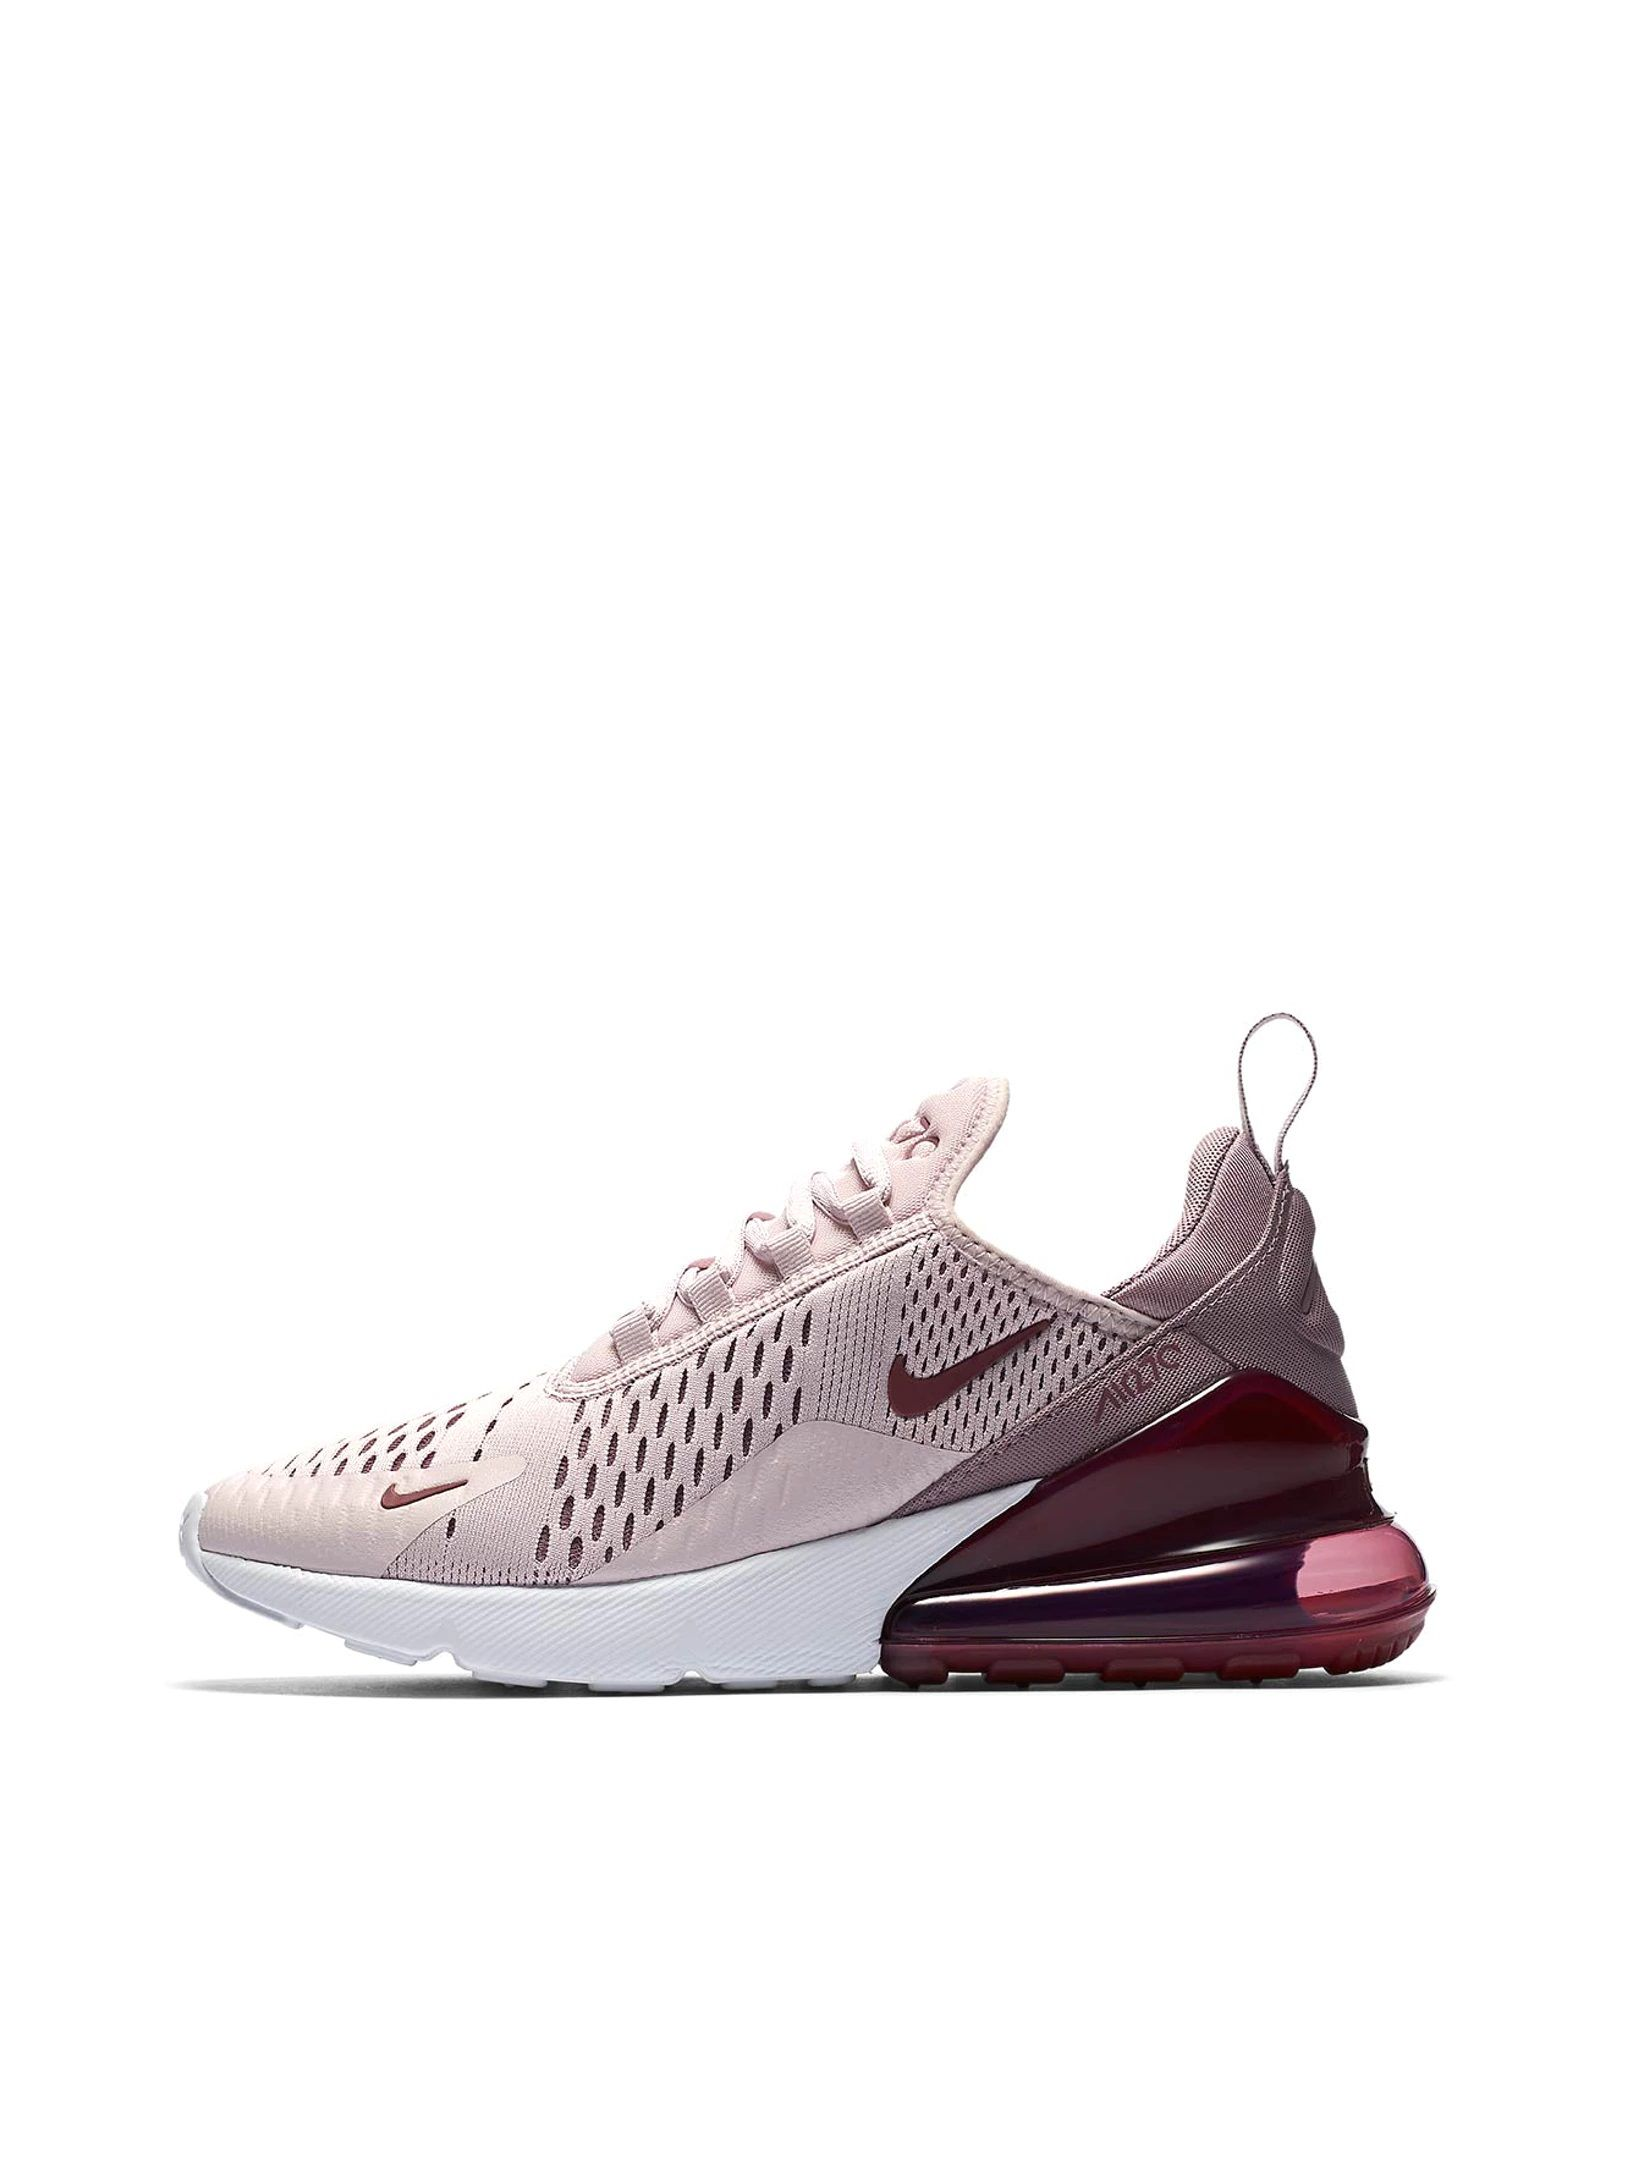 Nike Air Max 270: Barely Rose | Zapatos nike, Calzado nike ...